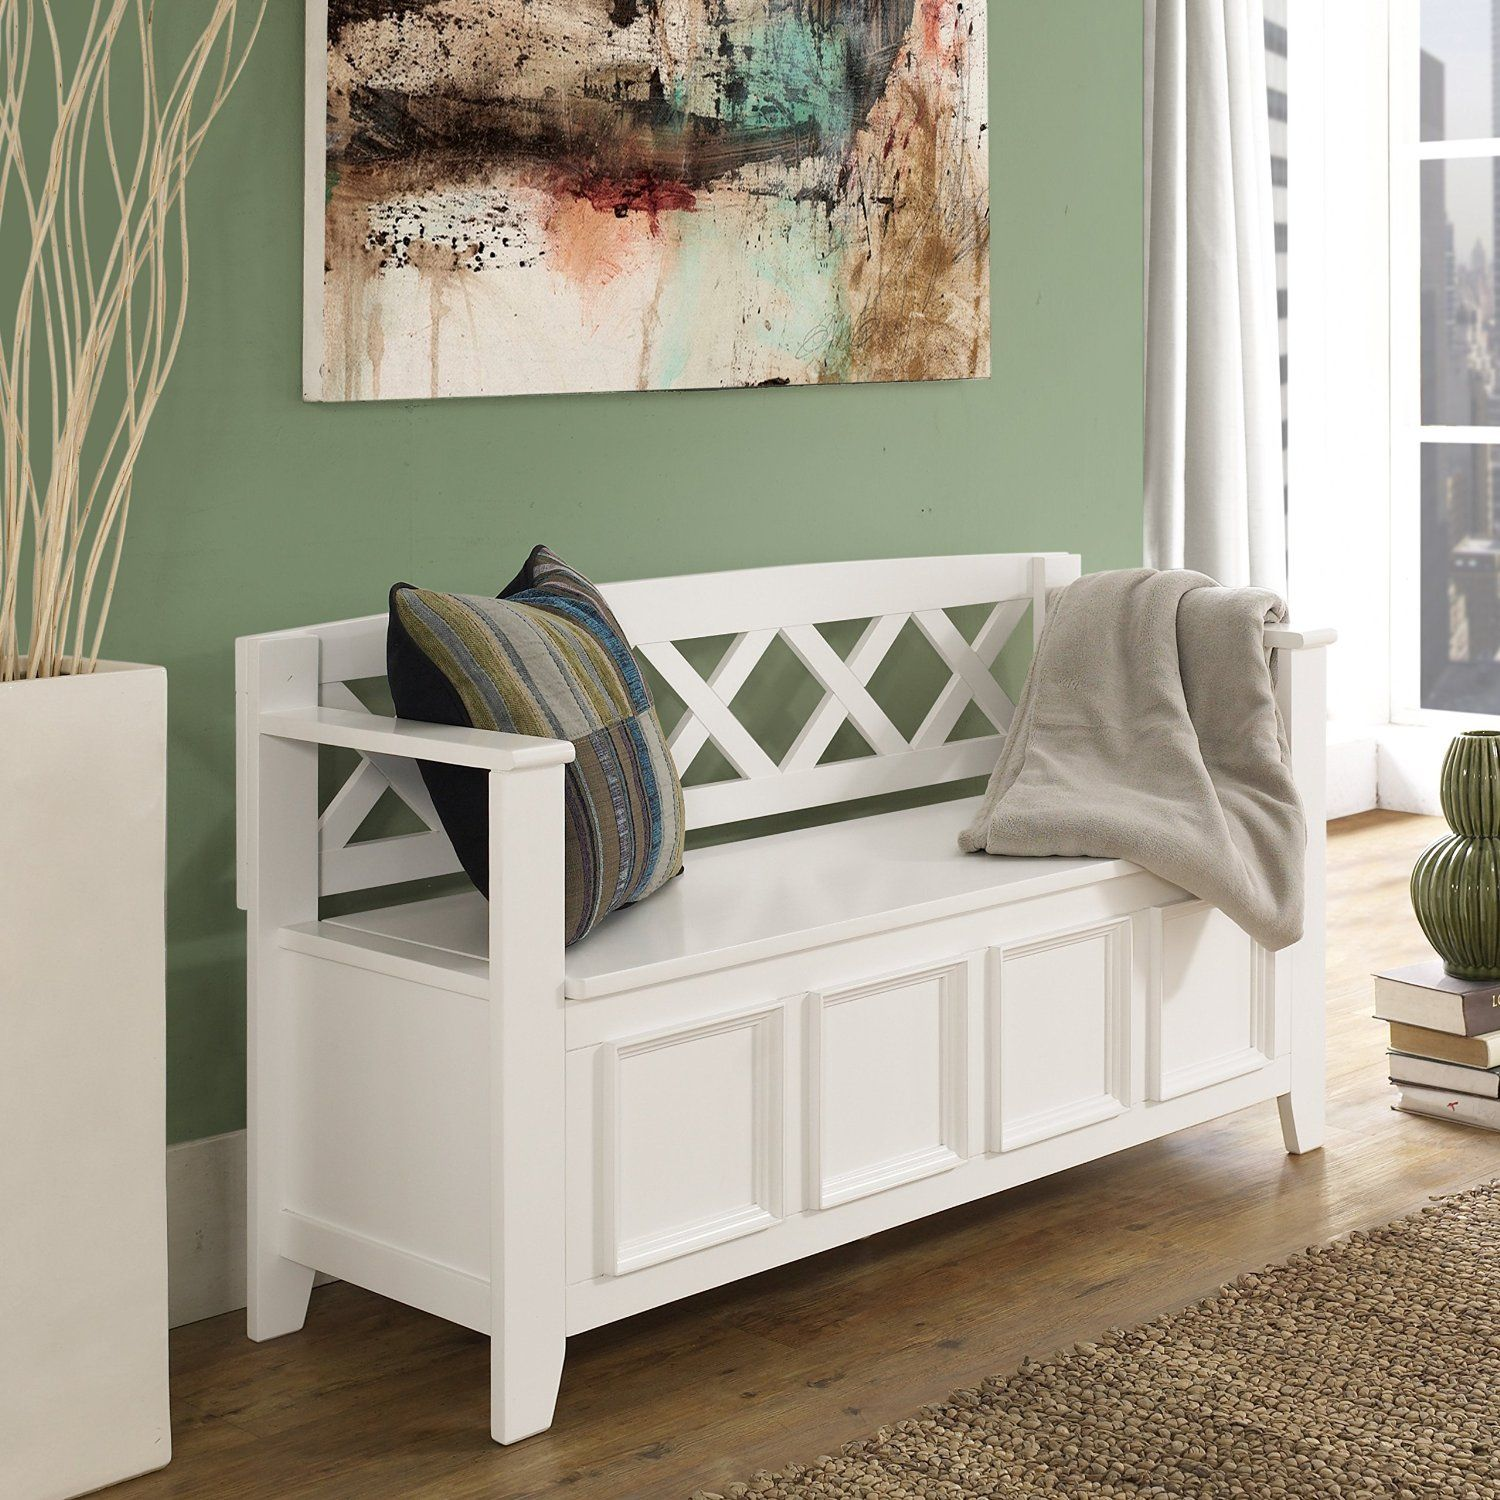 Swell Amazon Com Simpli Home Amherst Entryway Storage Bench Short Links Chair Design For Home Short Linksinfo